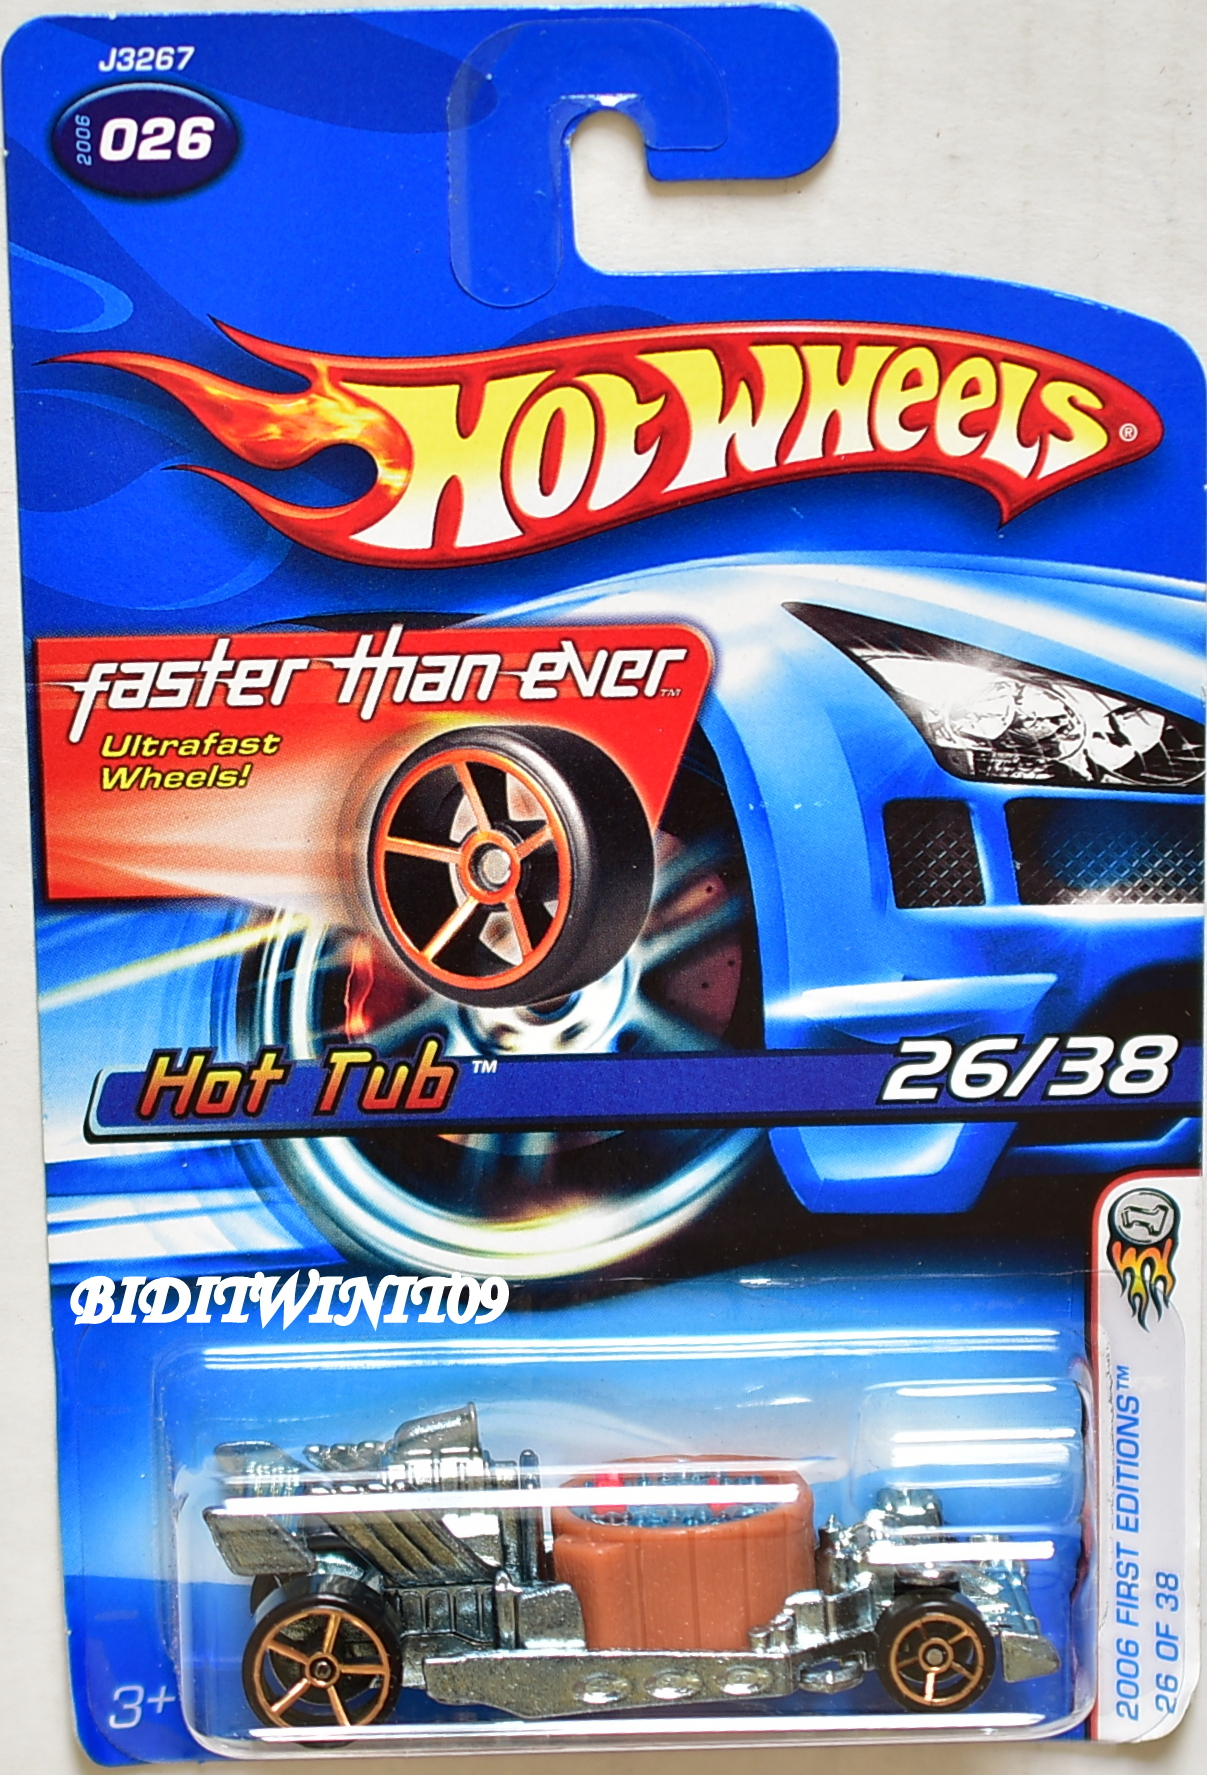 HOT WHEELS 2006 FIRST EDITIONS HOT TUB #026 FTE [0001058] - $7.39 ...